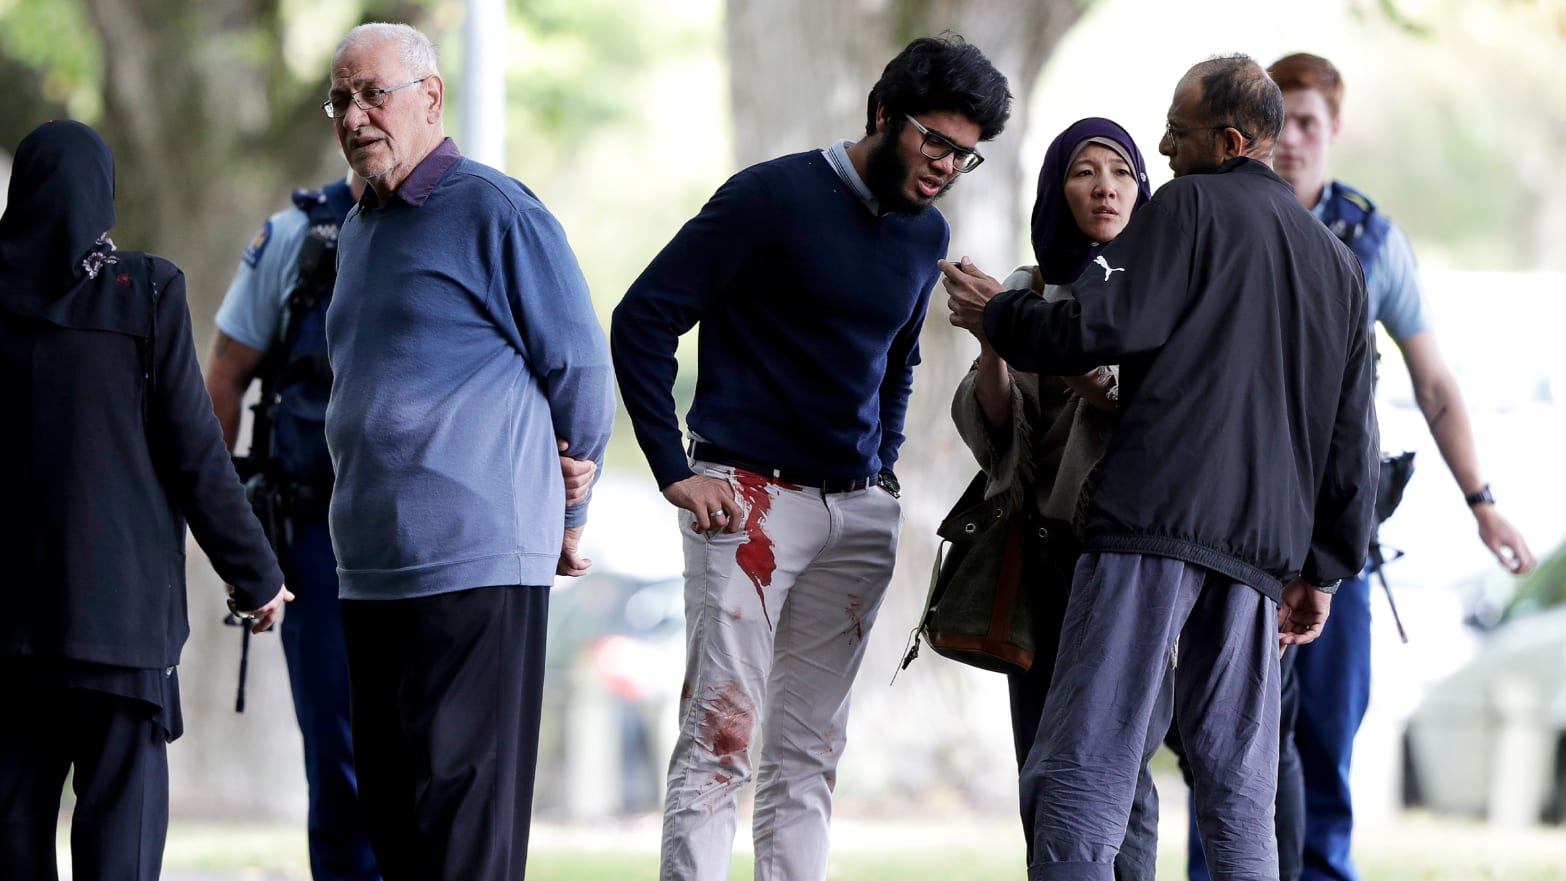 New Zealand Shooting Video at Christchurch Mosques: Attack Linked to